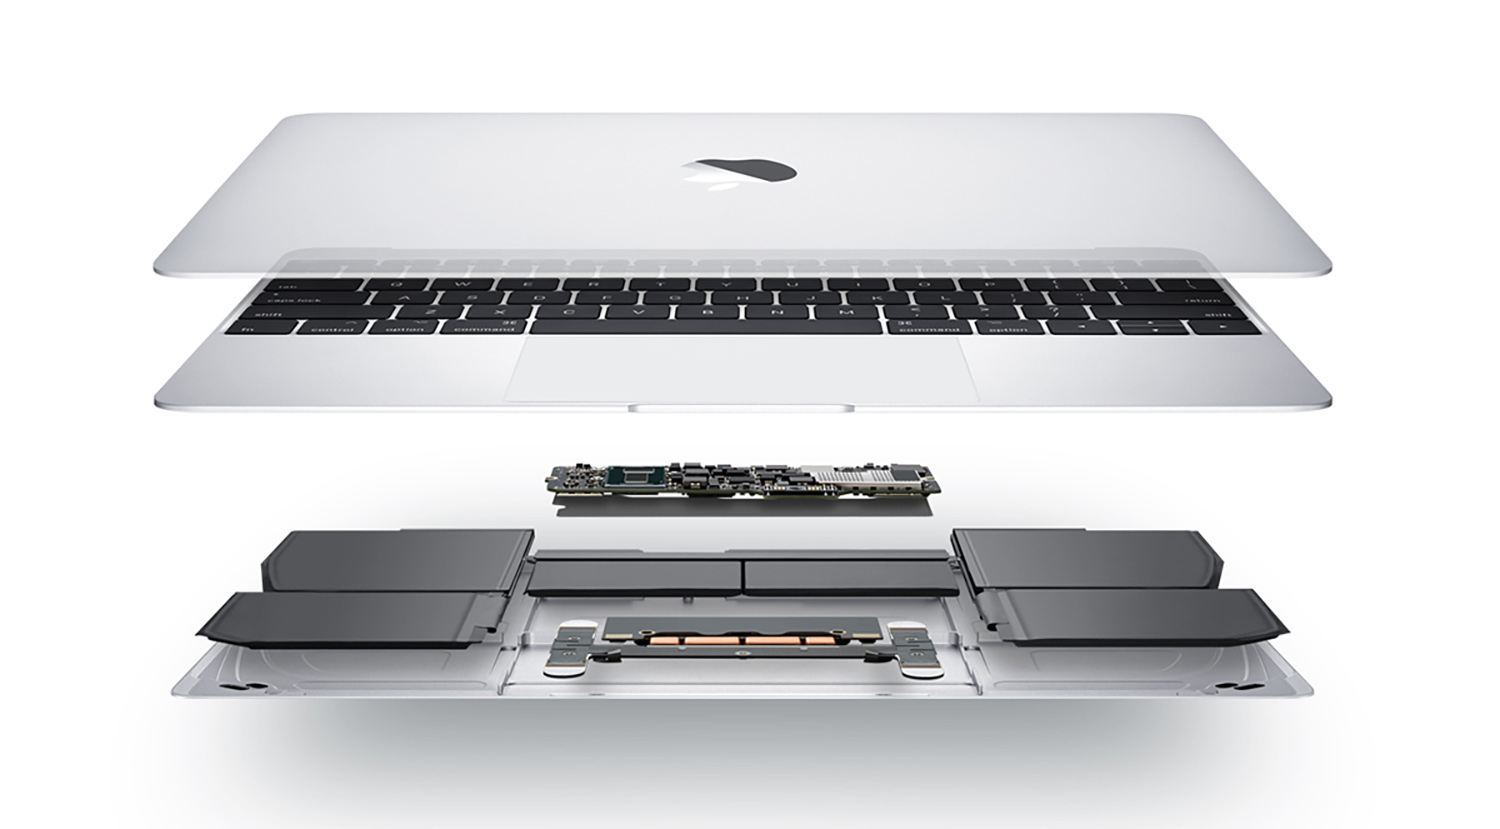 Image of article 'ARM-Based 12-inch MacBook Specs Include A14X Bionic SoC, up to 16GB RAM, 20-Hour Battery Life & More'